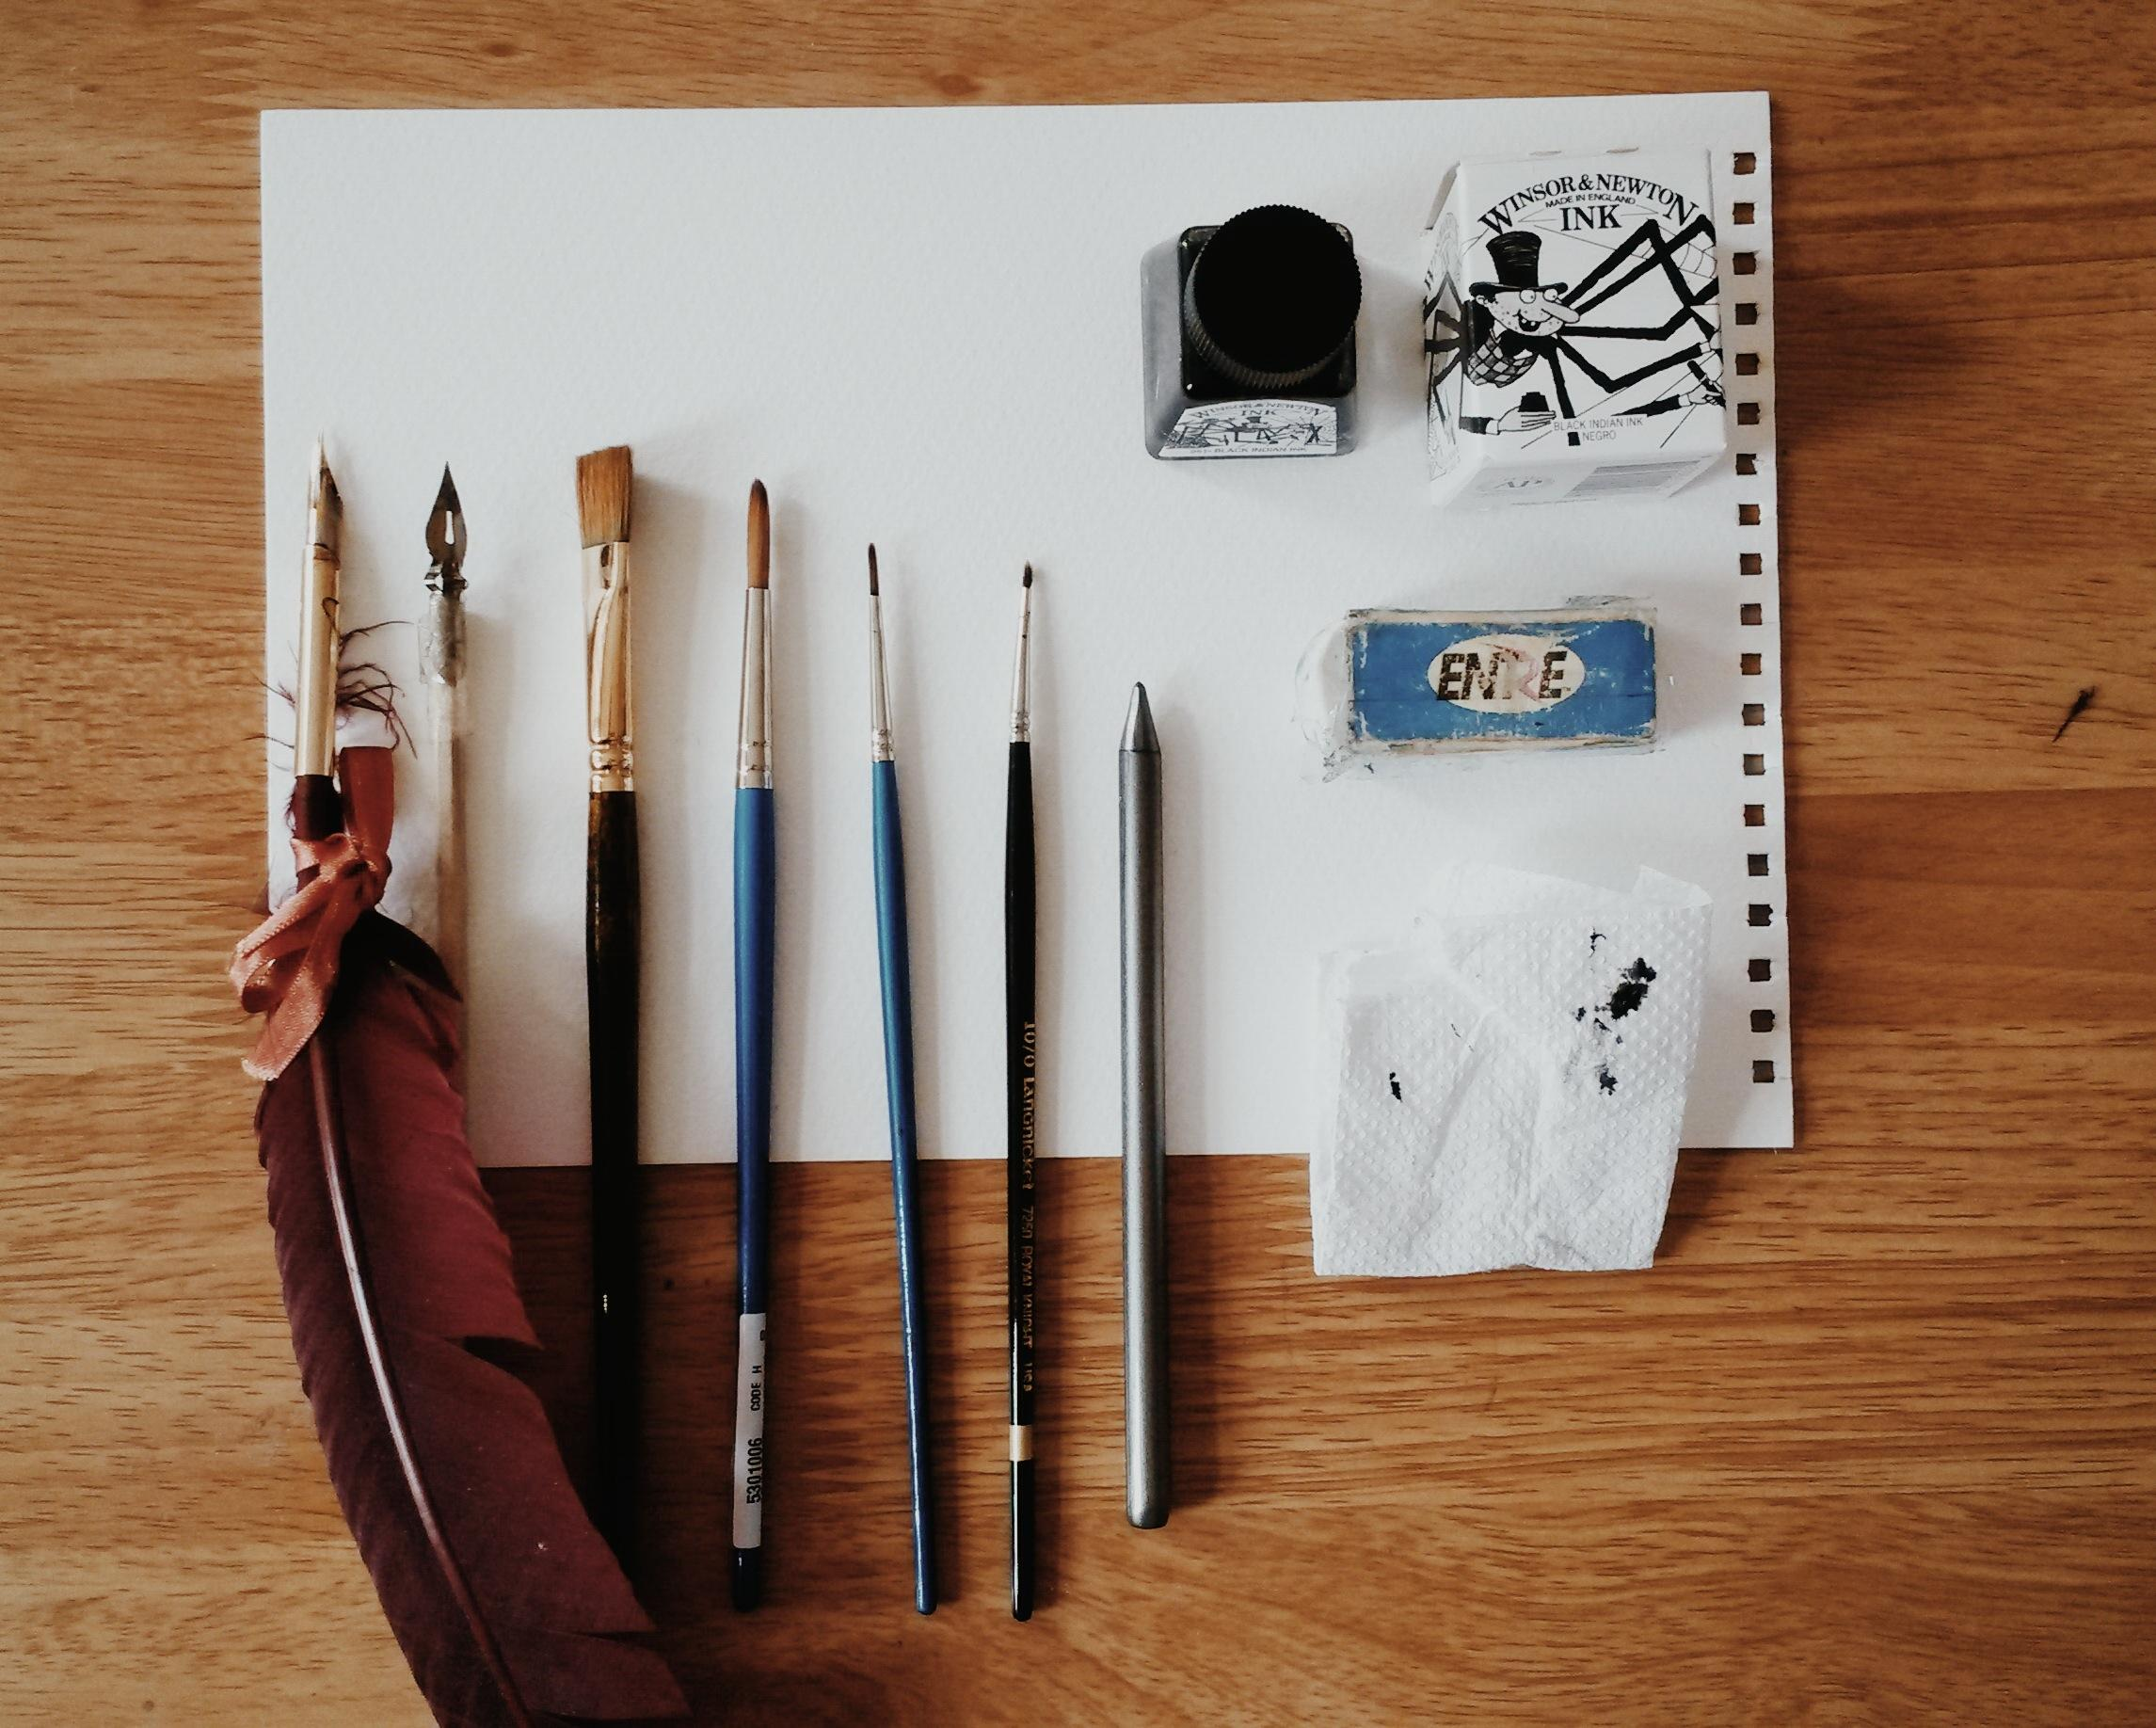 Paintbrushes, Winsor & Newton india ink and dip pens for creating illustrations